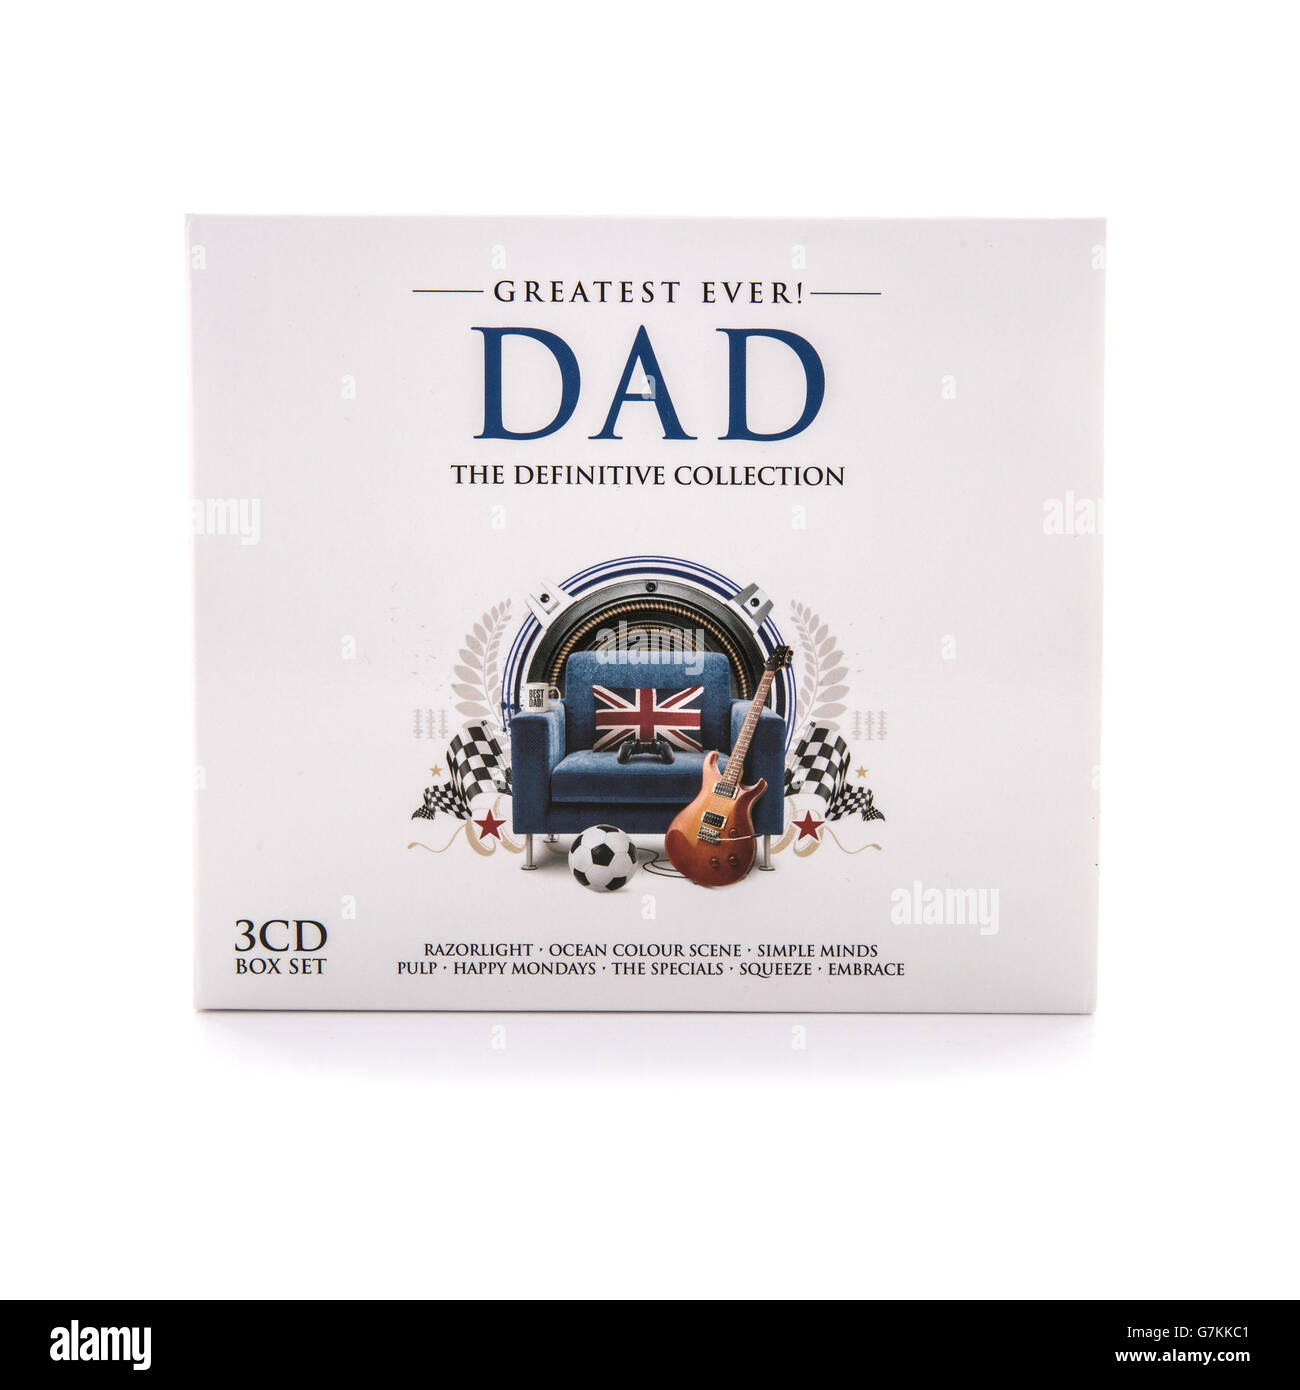 Greatest Ever Dad, The Definitive Collection 3 CD Box Set on a white background - Stock Image